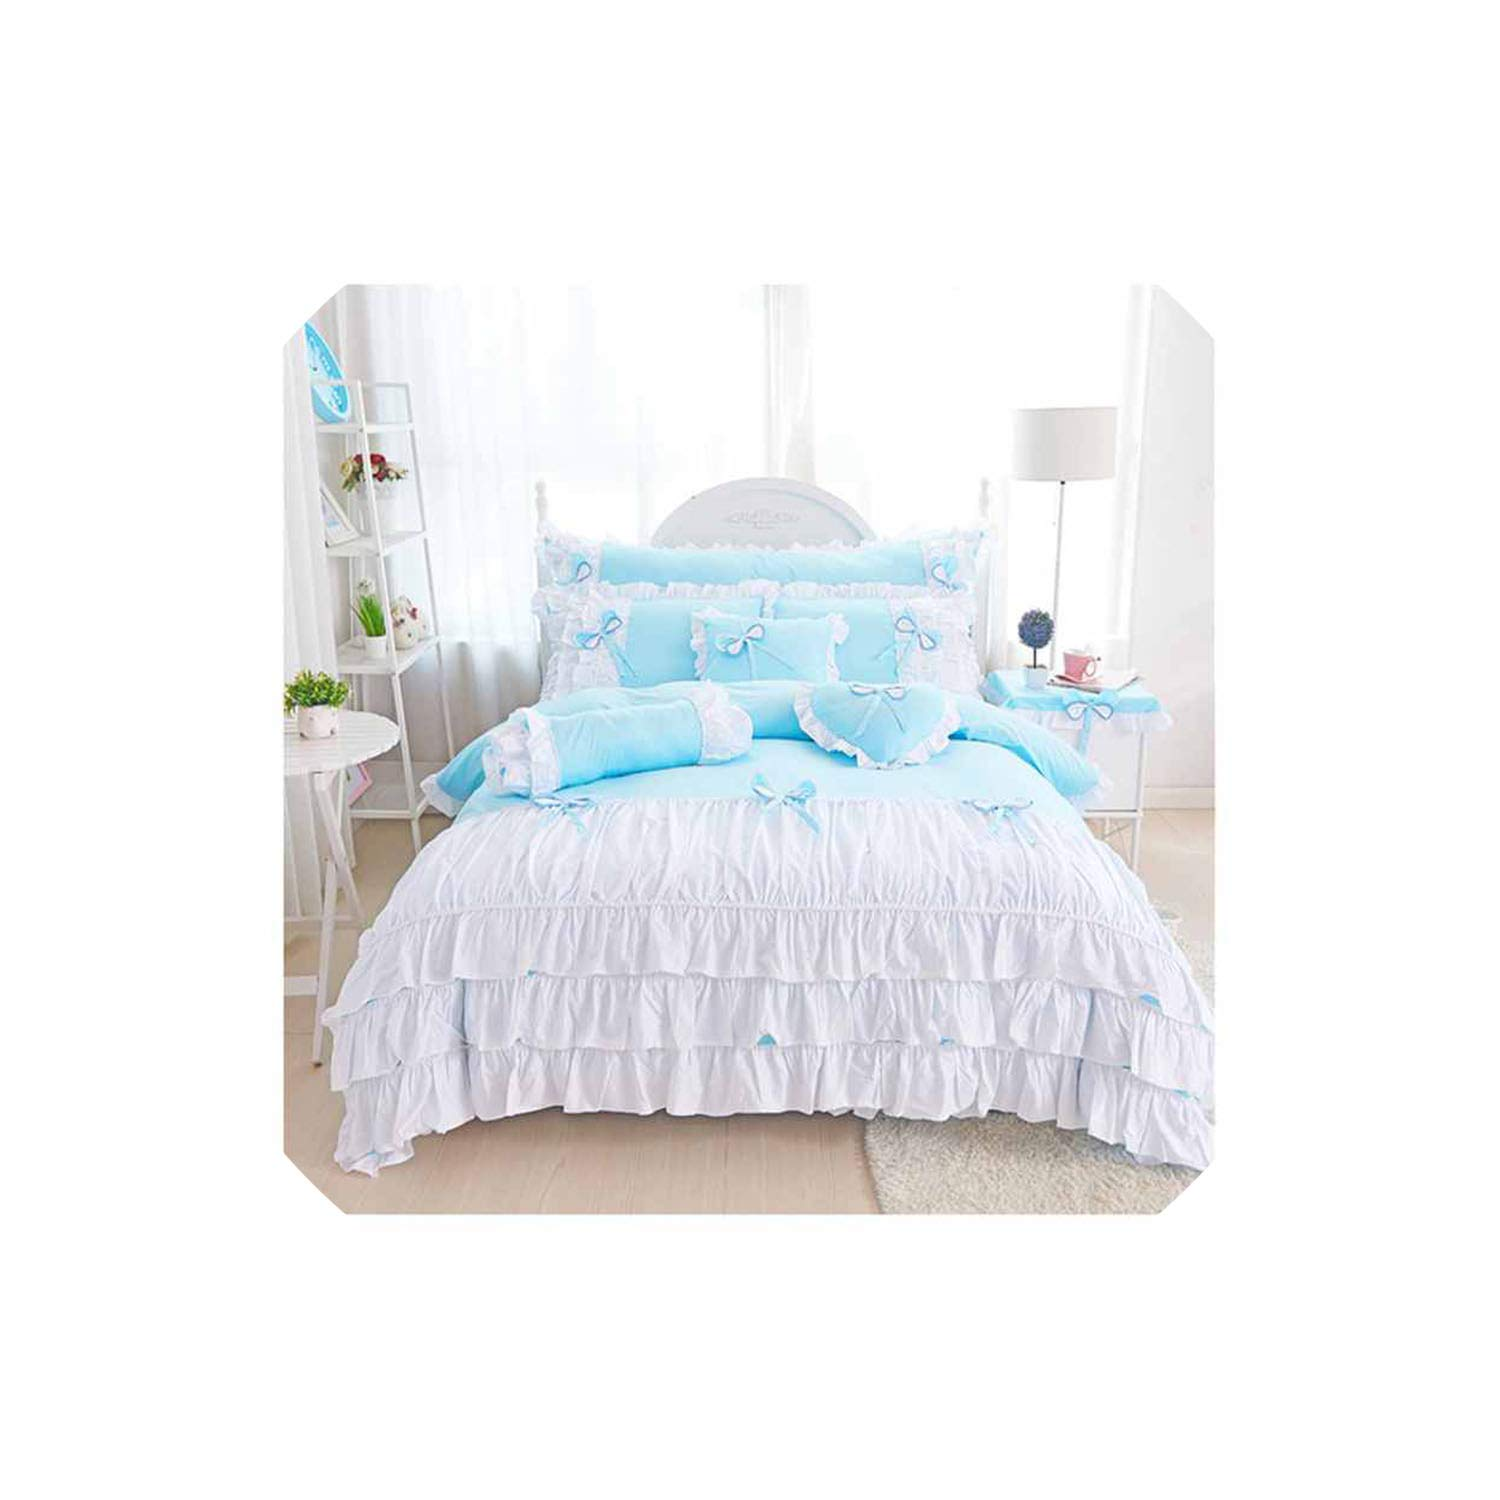 Pocket shop Korean Style Blue/Pink Princess Bedding Set Twin Size 4Pcs Girls Quilt Cover Ruffles Bedspread Bed Sheet Home Textile,Sky Blue,Size 4Pcs